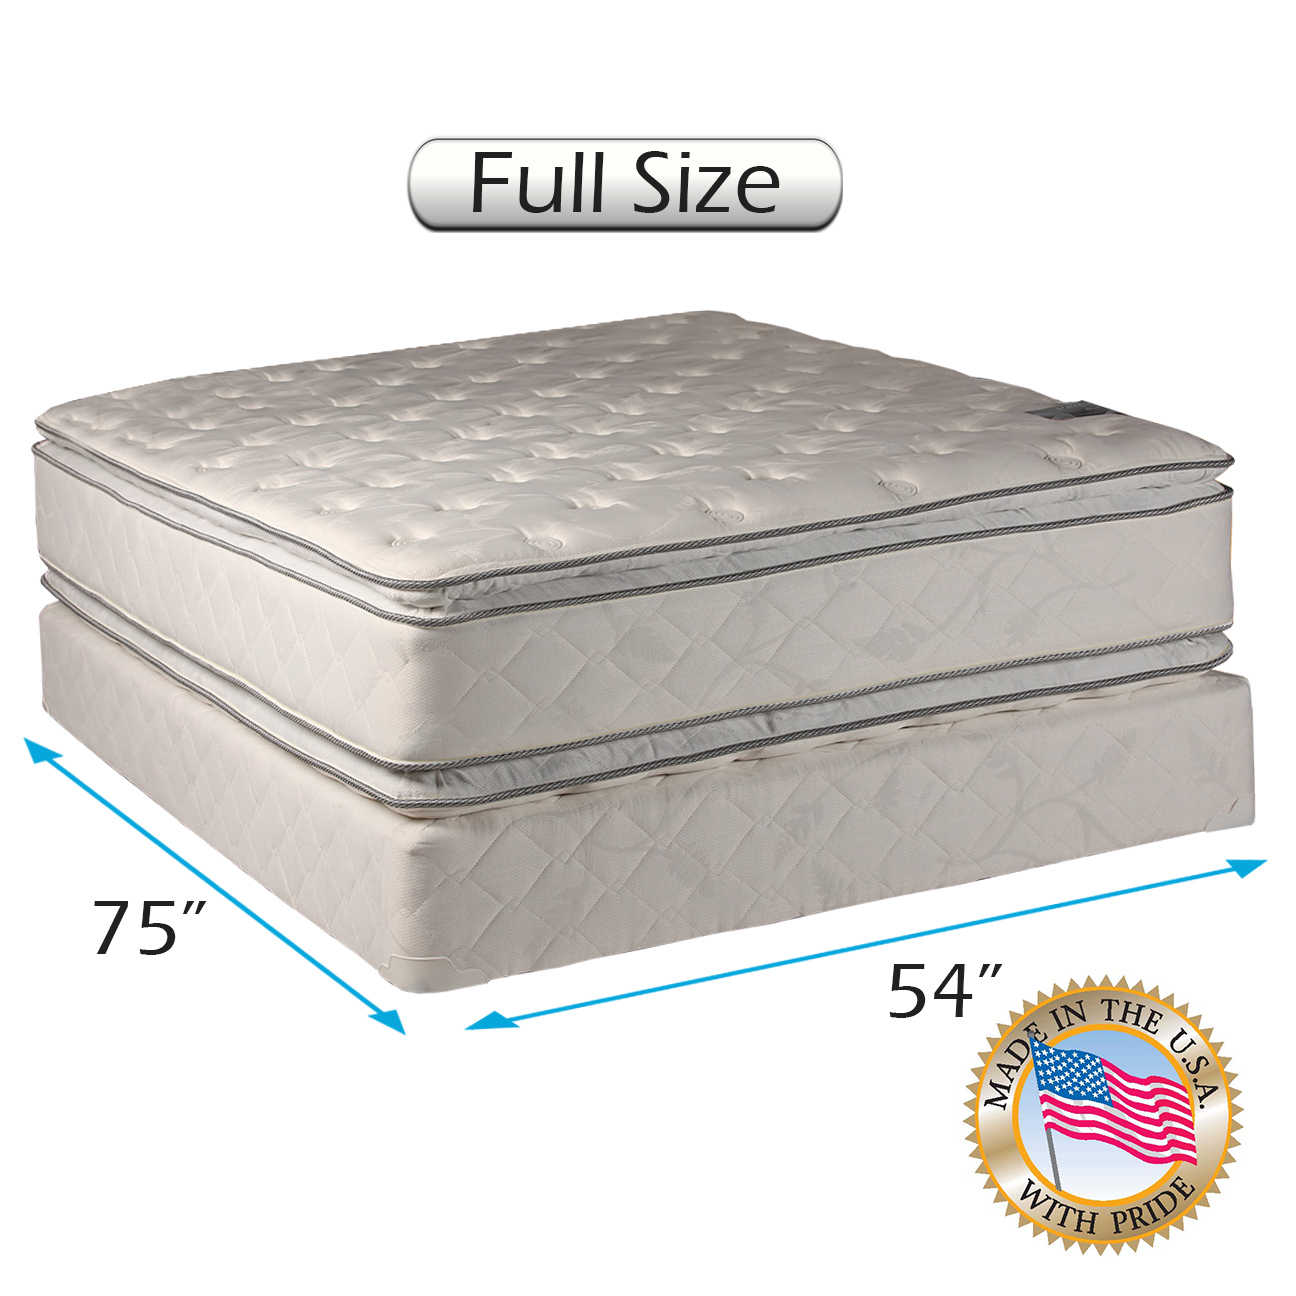 Serenity Pillowtop - (Full Size) Medium Soft Mattress set Bed Frame Included Double-Sided Sleep System with Enhanced Cushion Support - Fully Assembled, Back Support, Longlasting by Dream Solutions USA